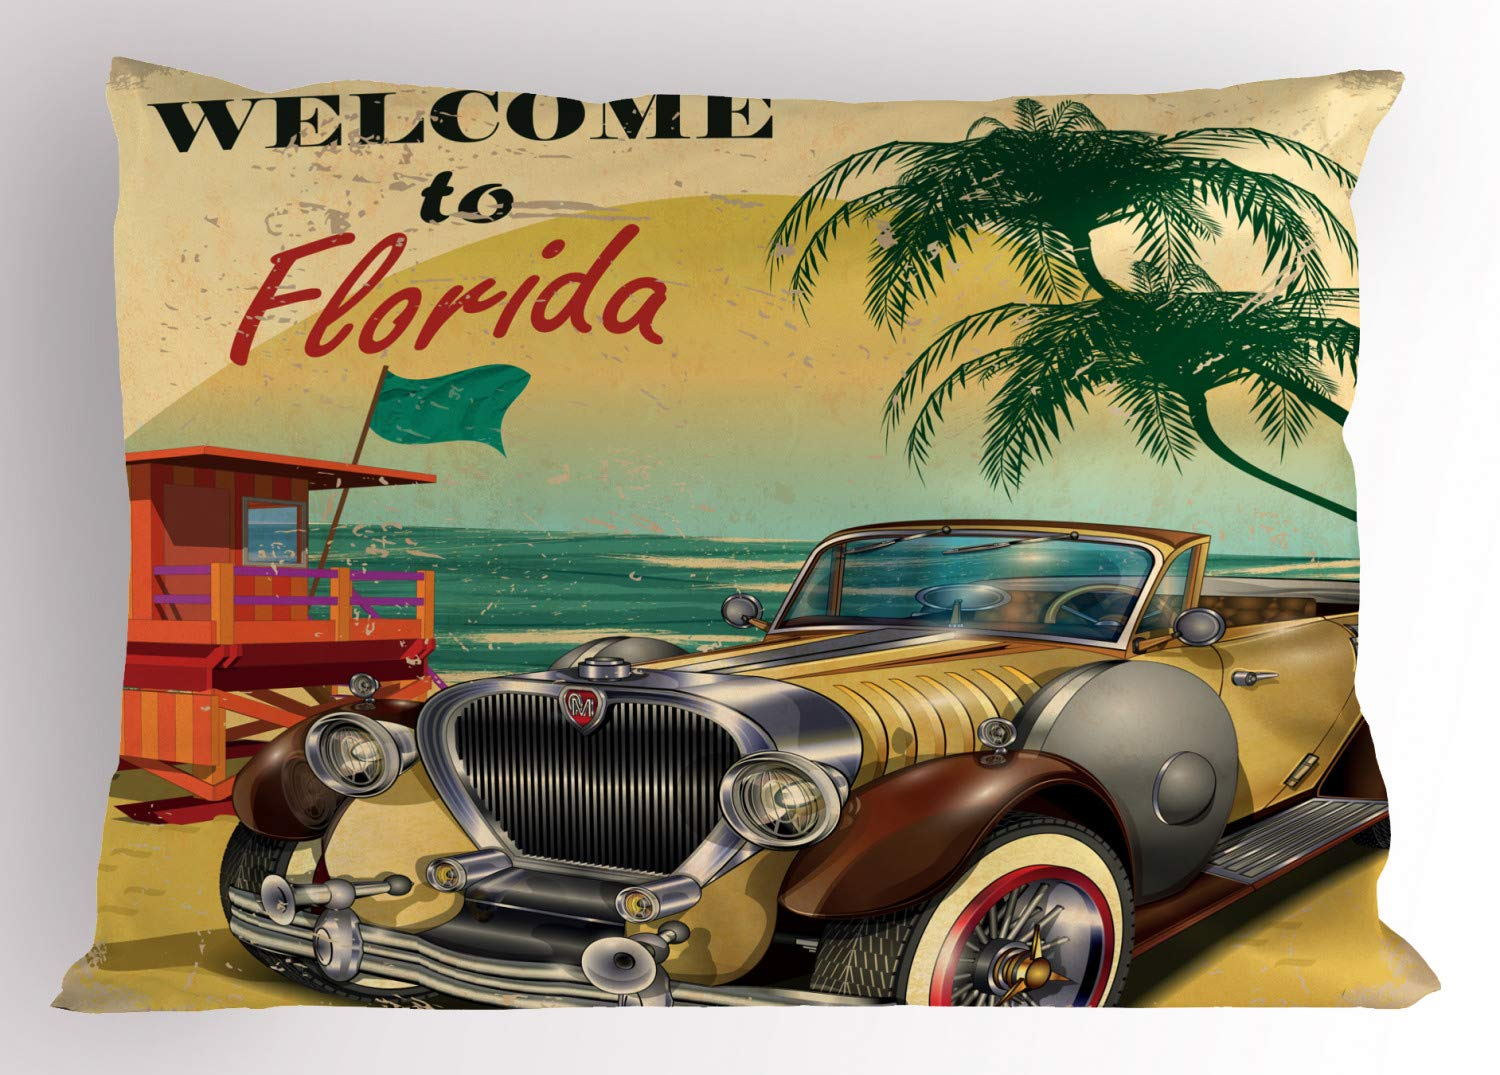 Multicolor 30 X 20 Inches Decorative Standard Queen Size Printed Pillowcase Ambesonne Florida Pillow Sham Old Beach Picture with Vintage American Car a Visit to Touristic Coastal State